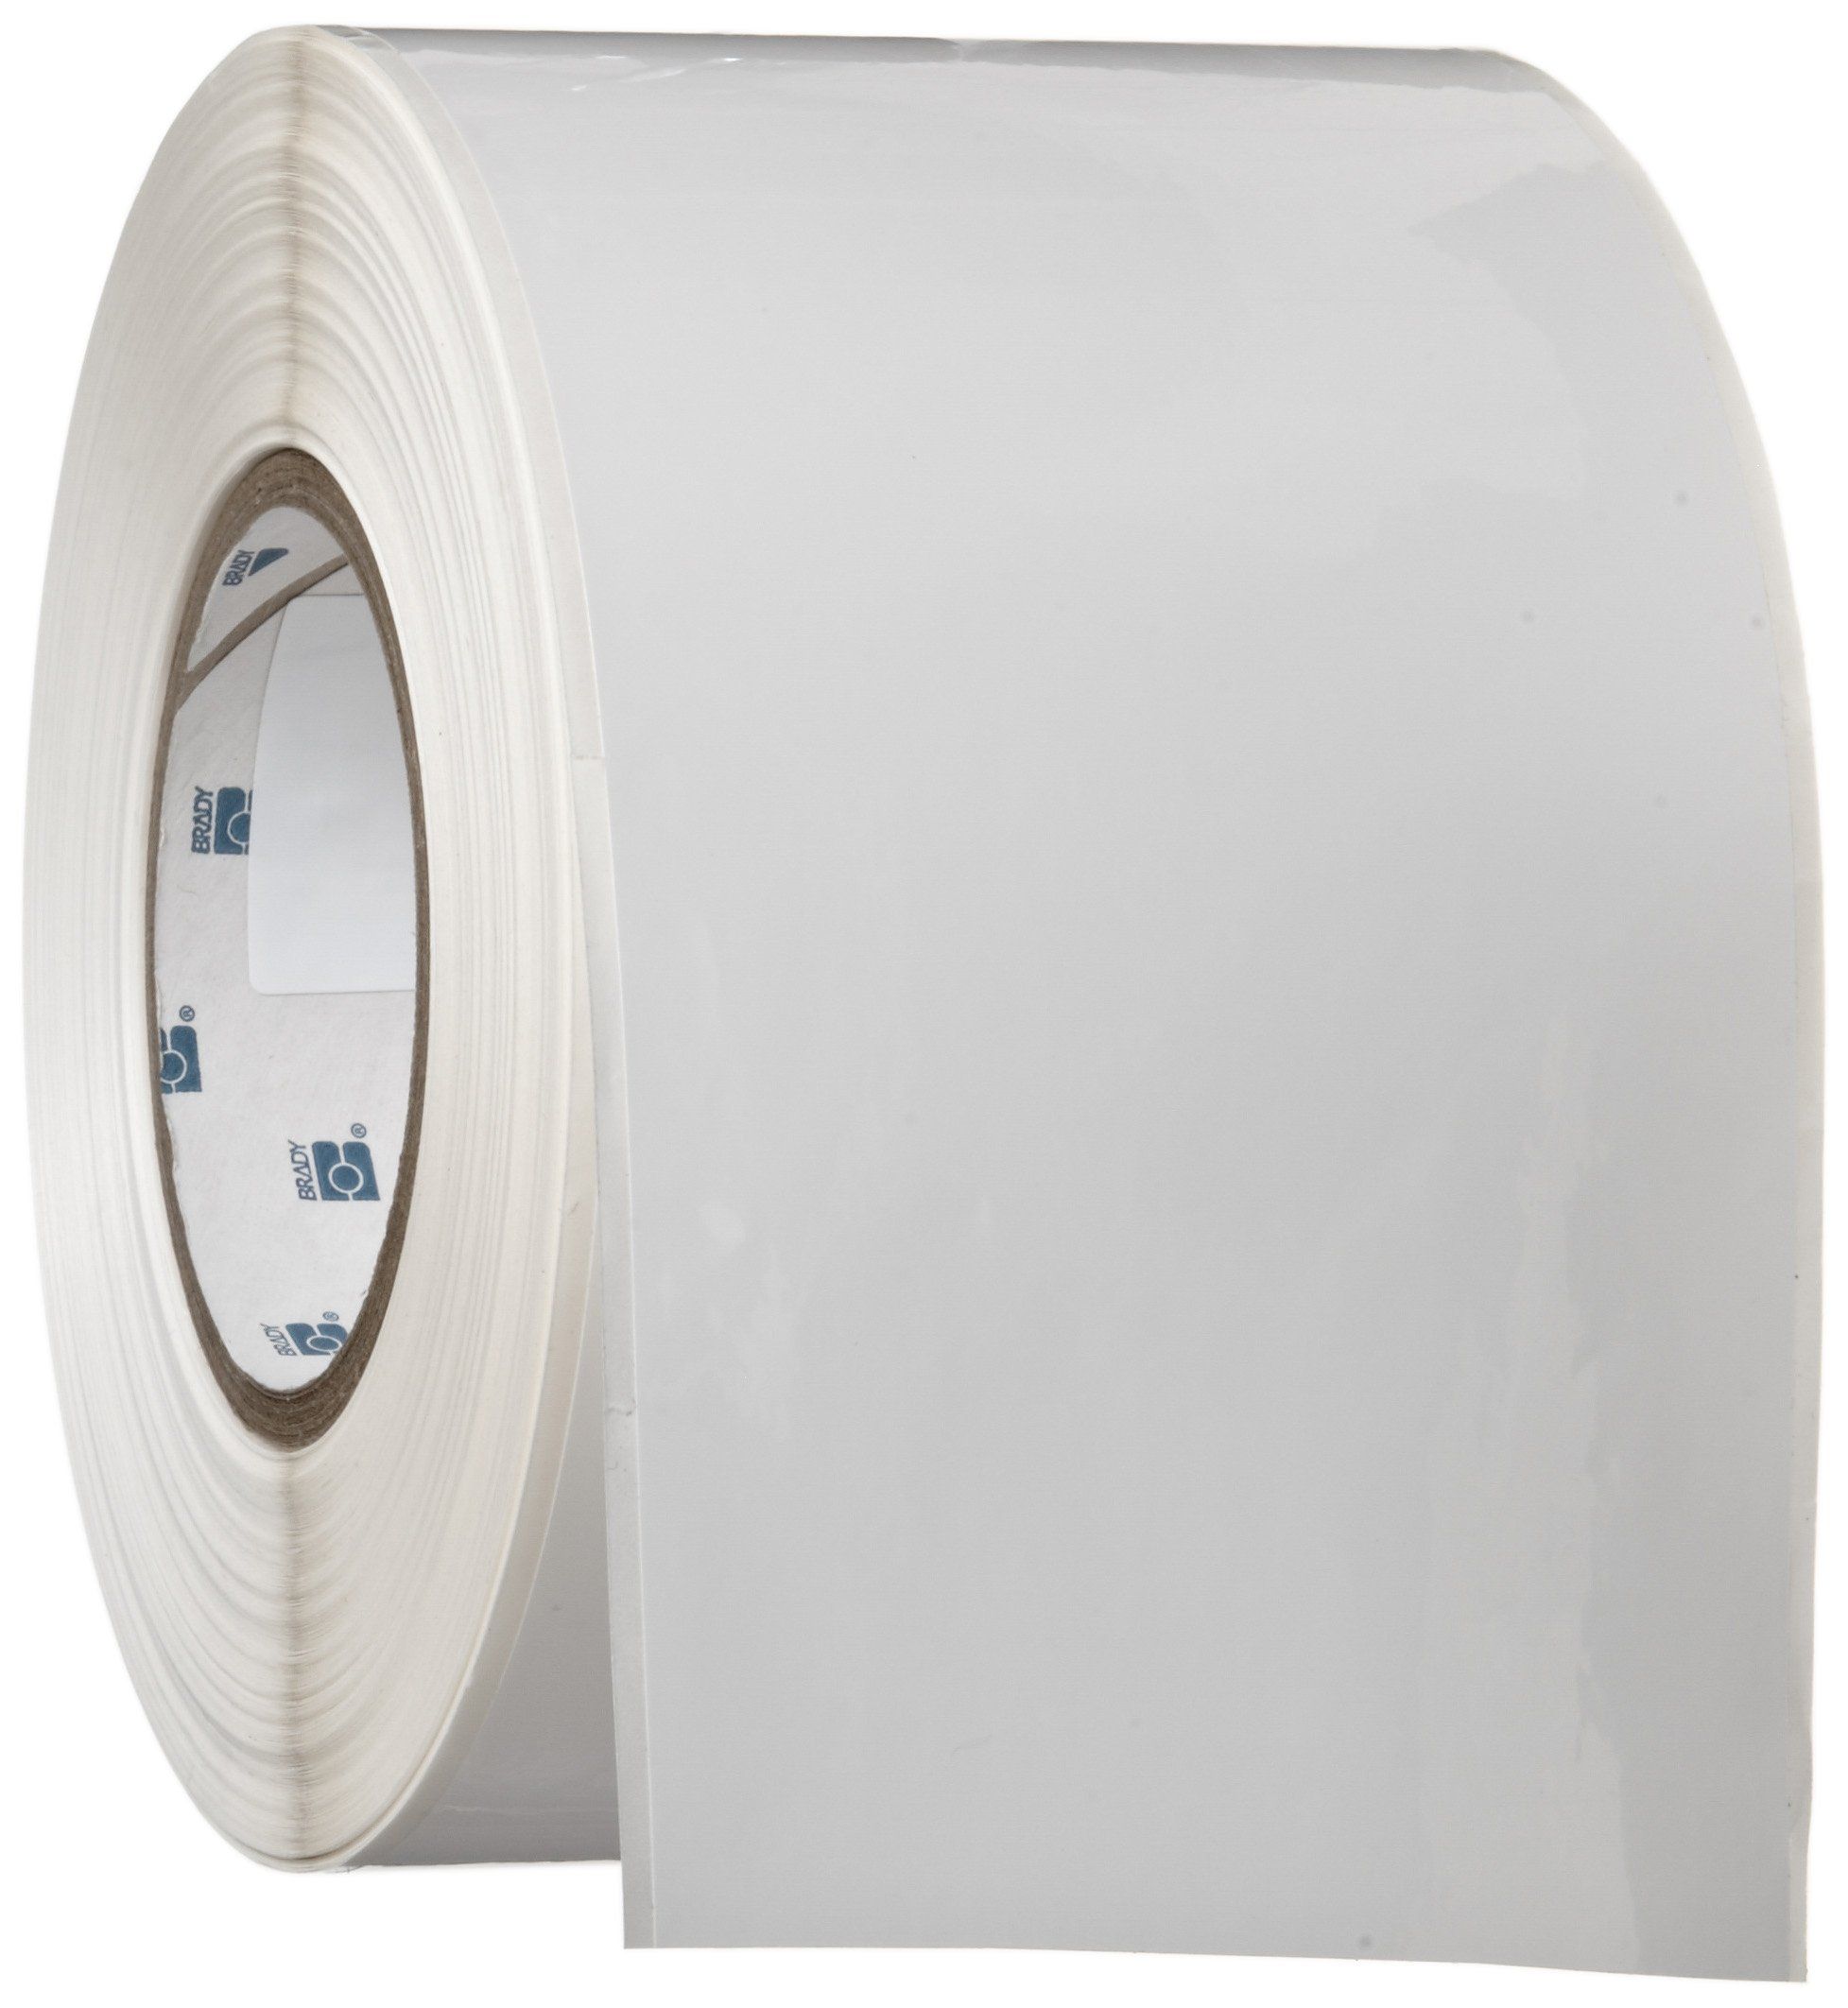 Brady THT-107-423 4'' Width x 300' Height, B-423 Permanent Polyester, Gloss Finish White Thermal Transfer Printable Label